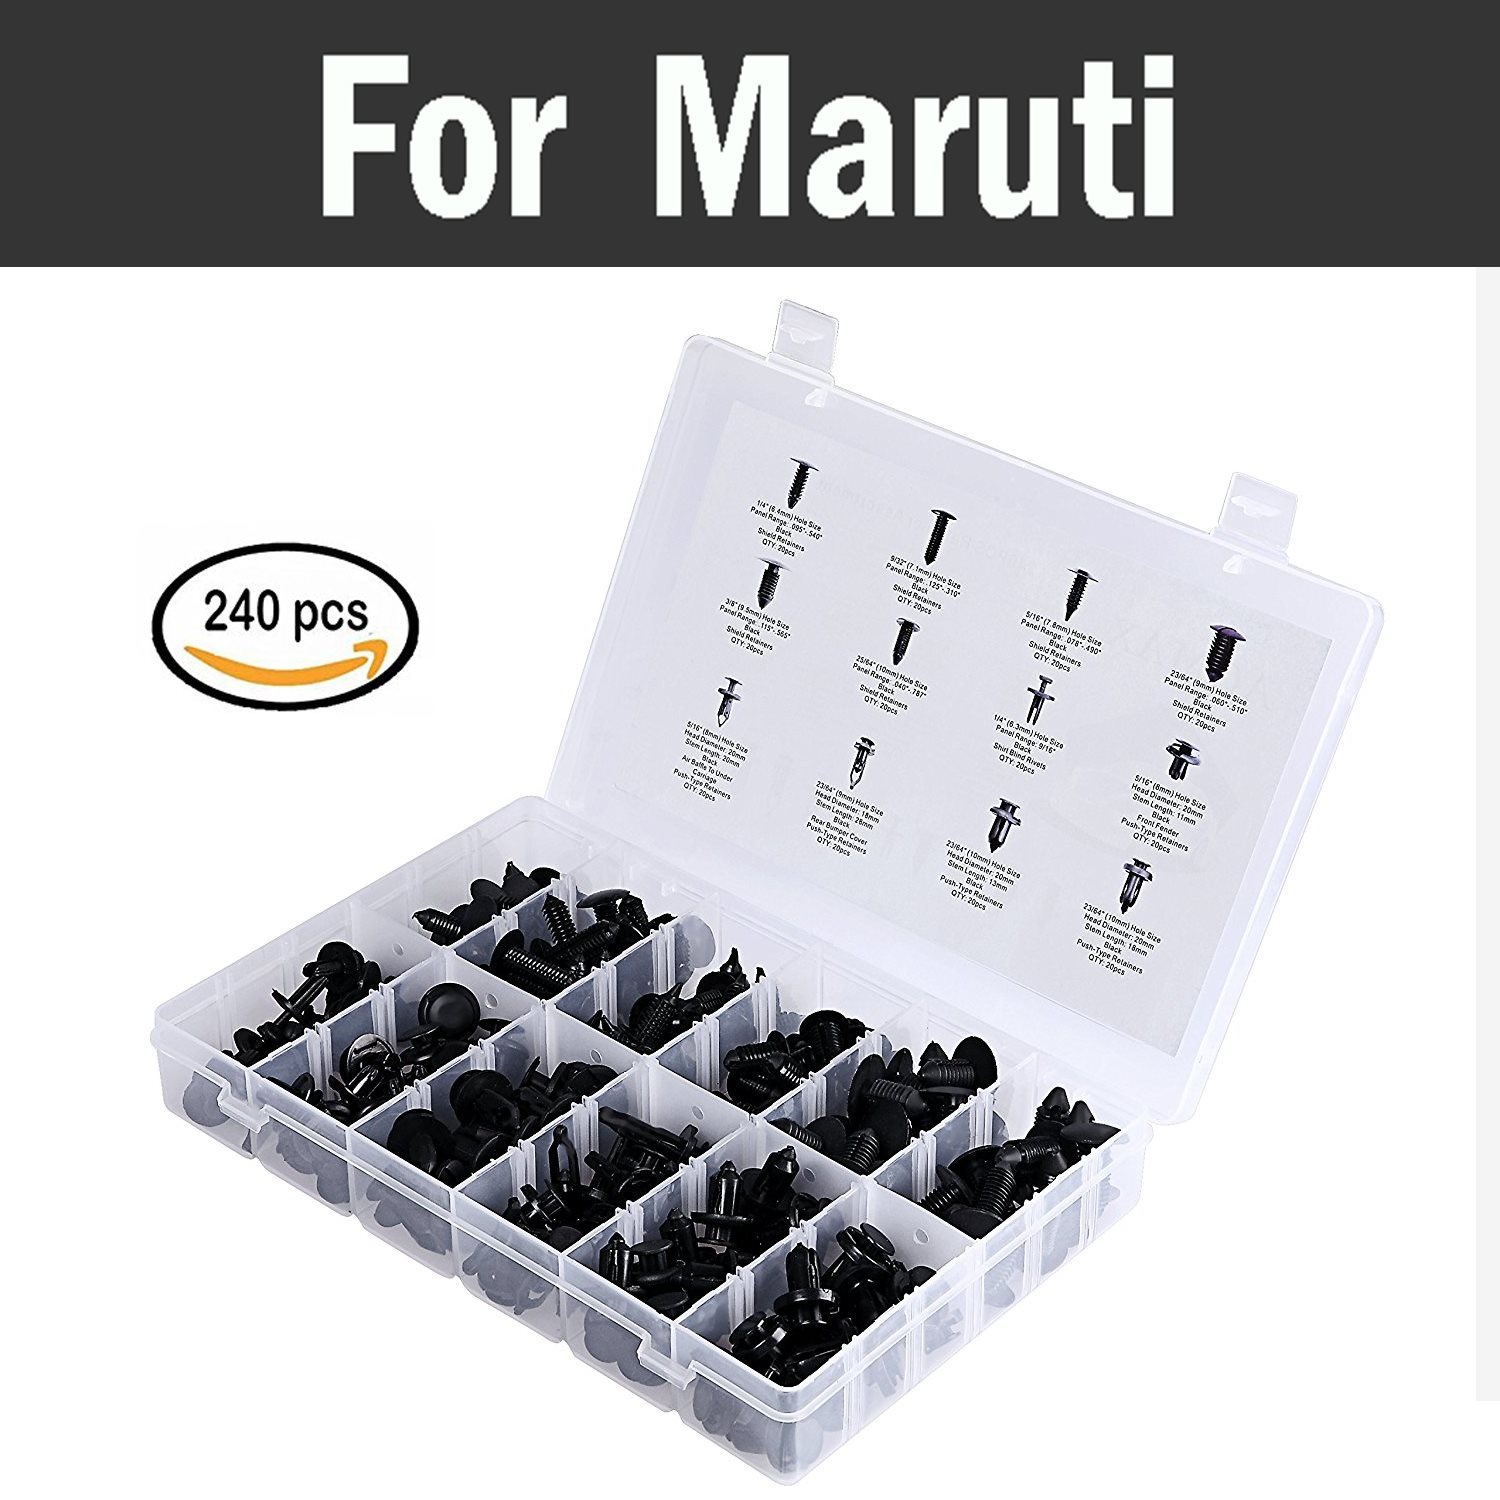 240pcs 12most Popular Sizes Set Car Retainer Clips Kit Fastener Remover Trim Set For Maruti 800 Alto Baleno Esteem Gypsy Zen